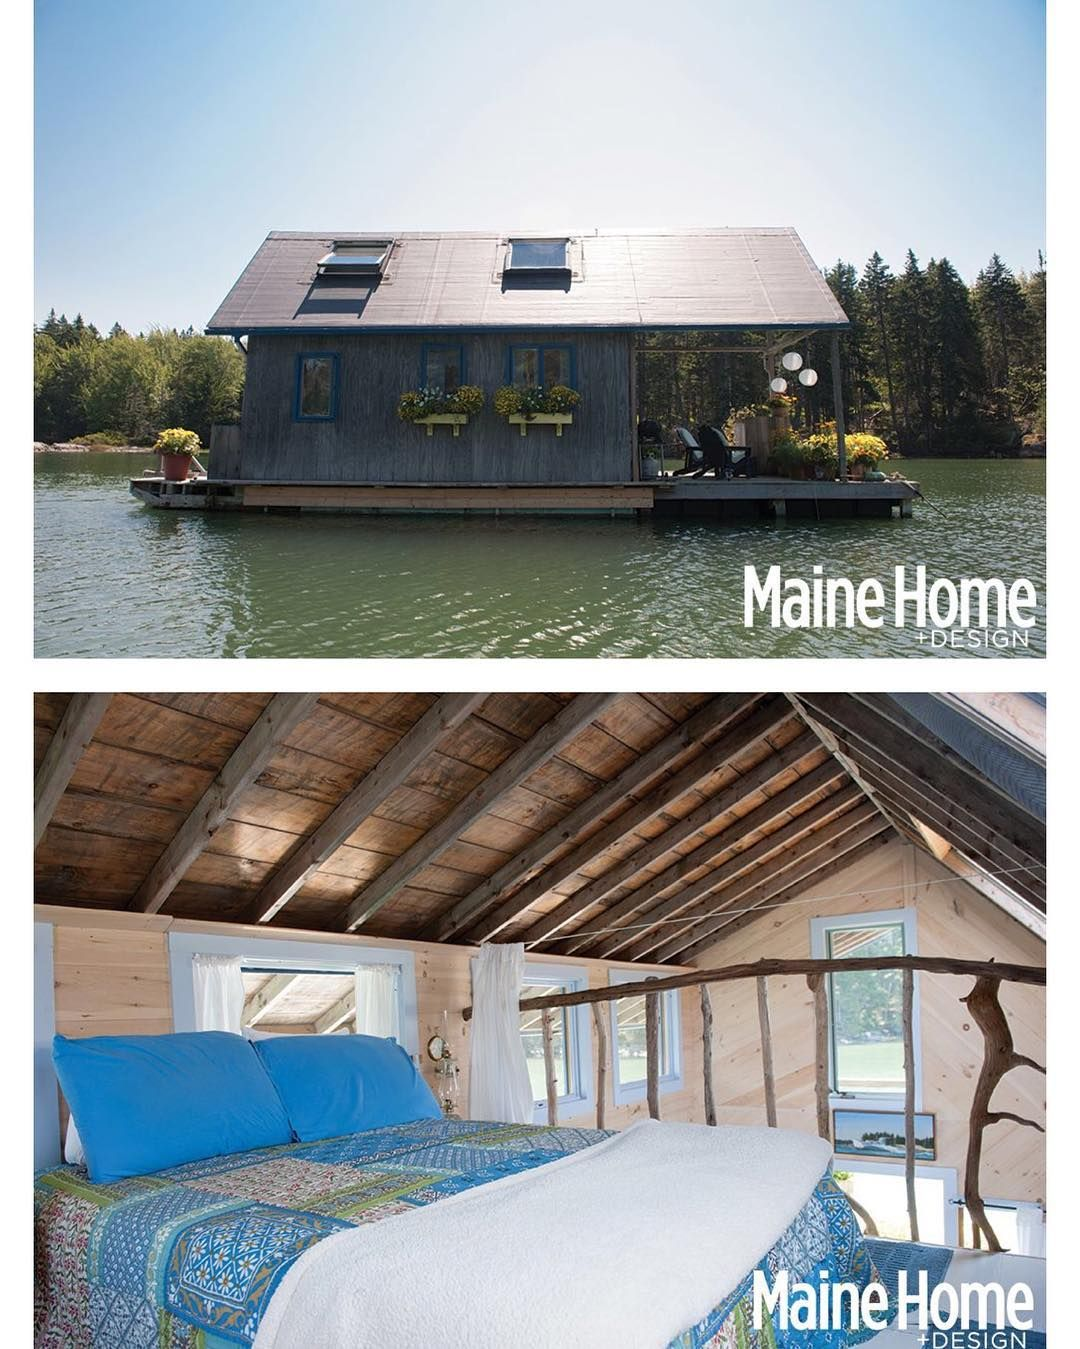 Chateau Bathtub a floating cabin on #PerryCreek in #Maine owned and built by Foy and Louisa Brown   More images @tinyhousemag   Photography by Nicole Wolf via Maine HomeDesign #interiors #interiordesign #architecture #decoration #interior #home #design #camper #bookofcabins #homedecor #house #decor #prefab #diy #campervan #compactliving #fineinteriors #cabin #shed #tinyhomes #tinyhouse #cabinfever #foodtruck #tinyhousemovement #airstream #treehouse #cabinlife #cottage